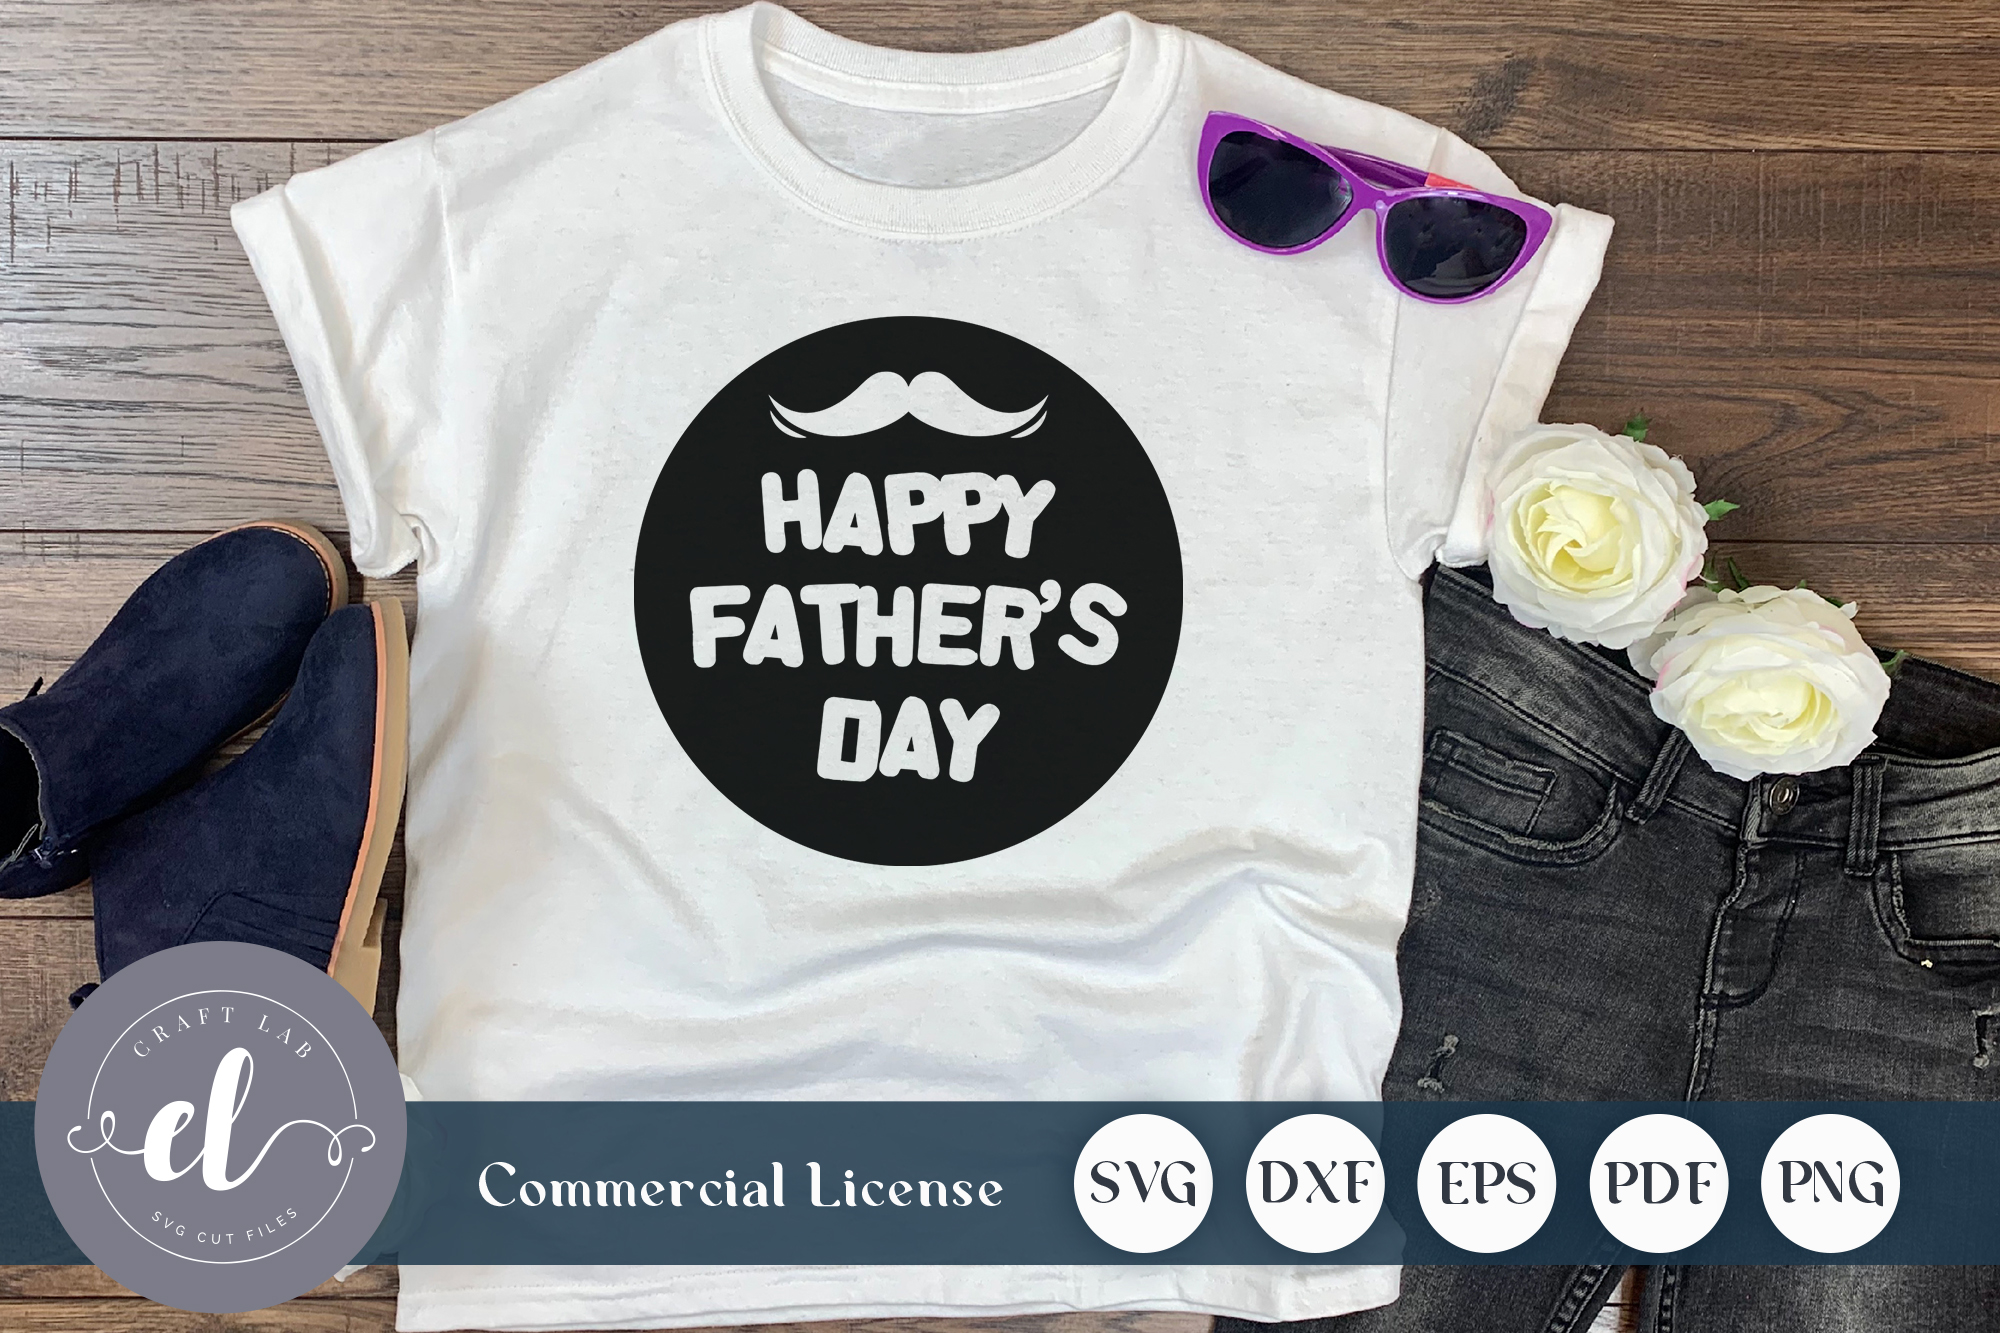 Download Free Happy Father S Day Graphic By Craftlabsvg Creative Fabrica for Cricut Explore, Silhouette and other cutting machines.